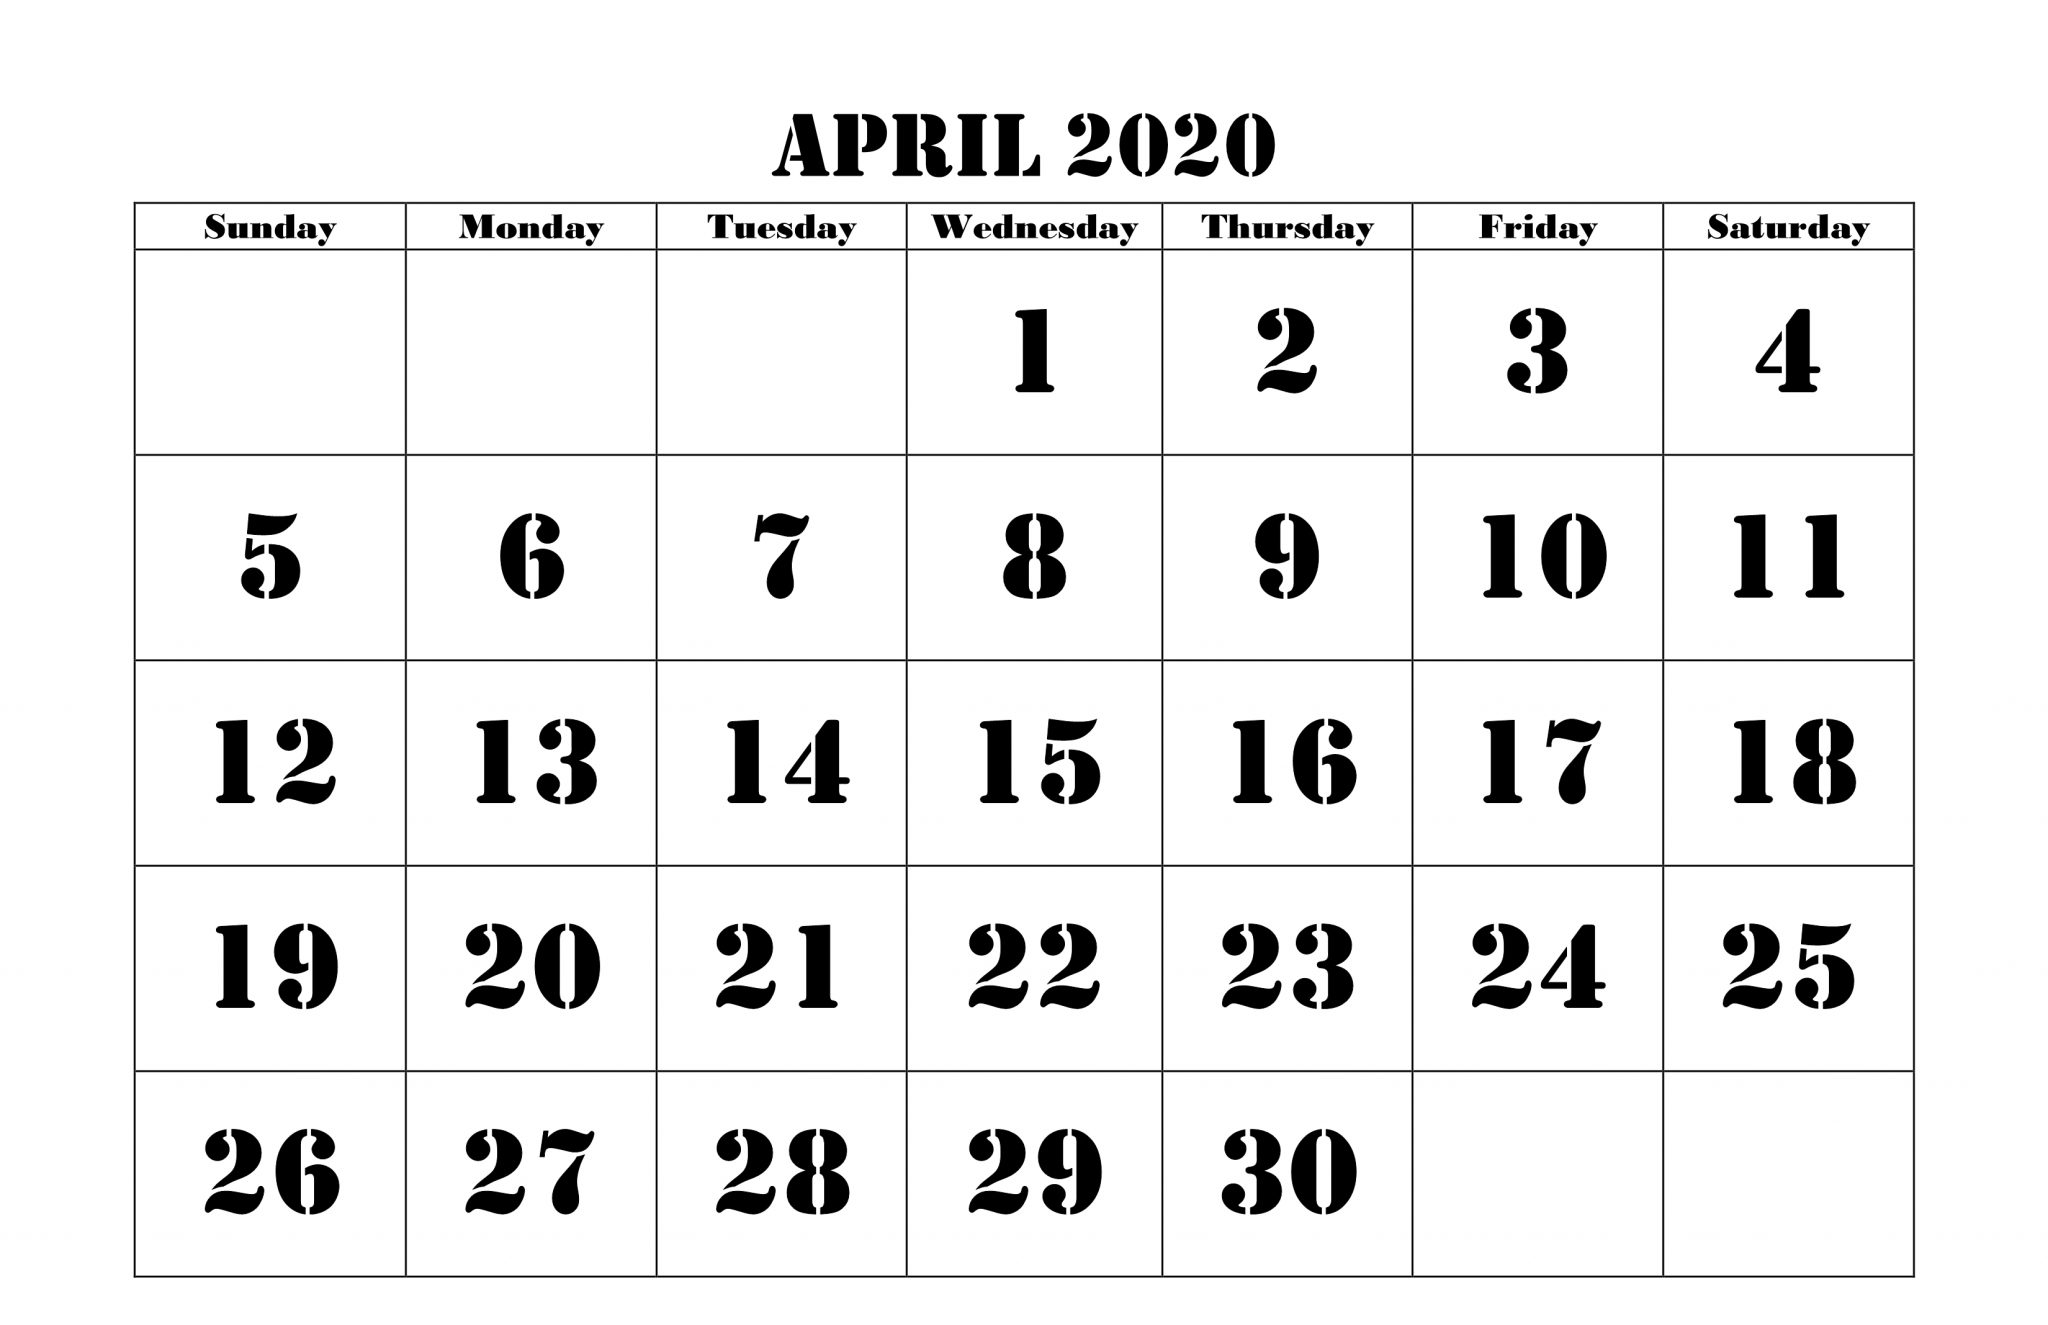 April 2020 Fillable Calendar